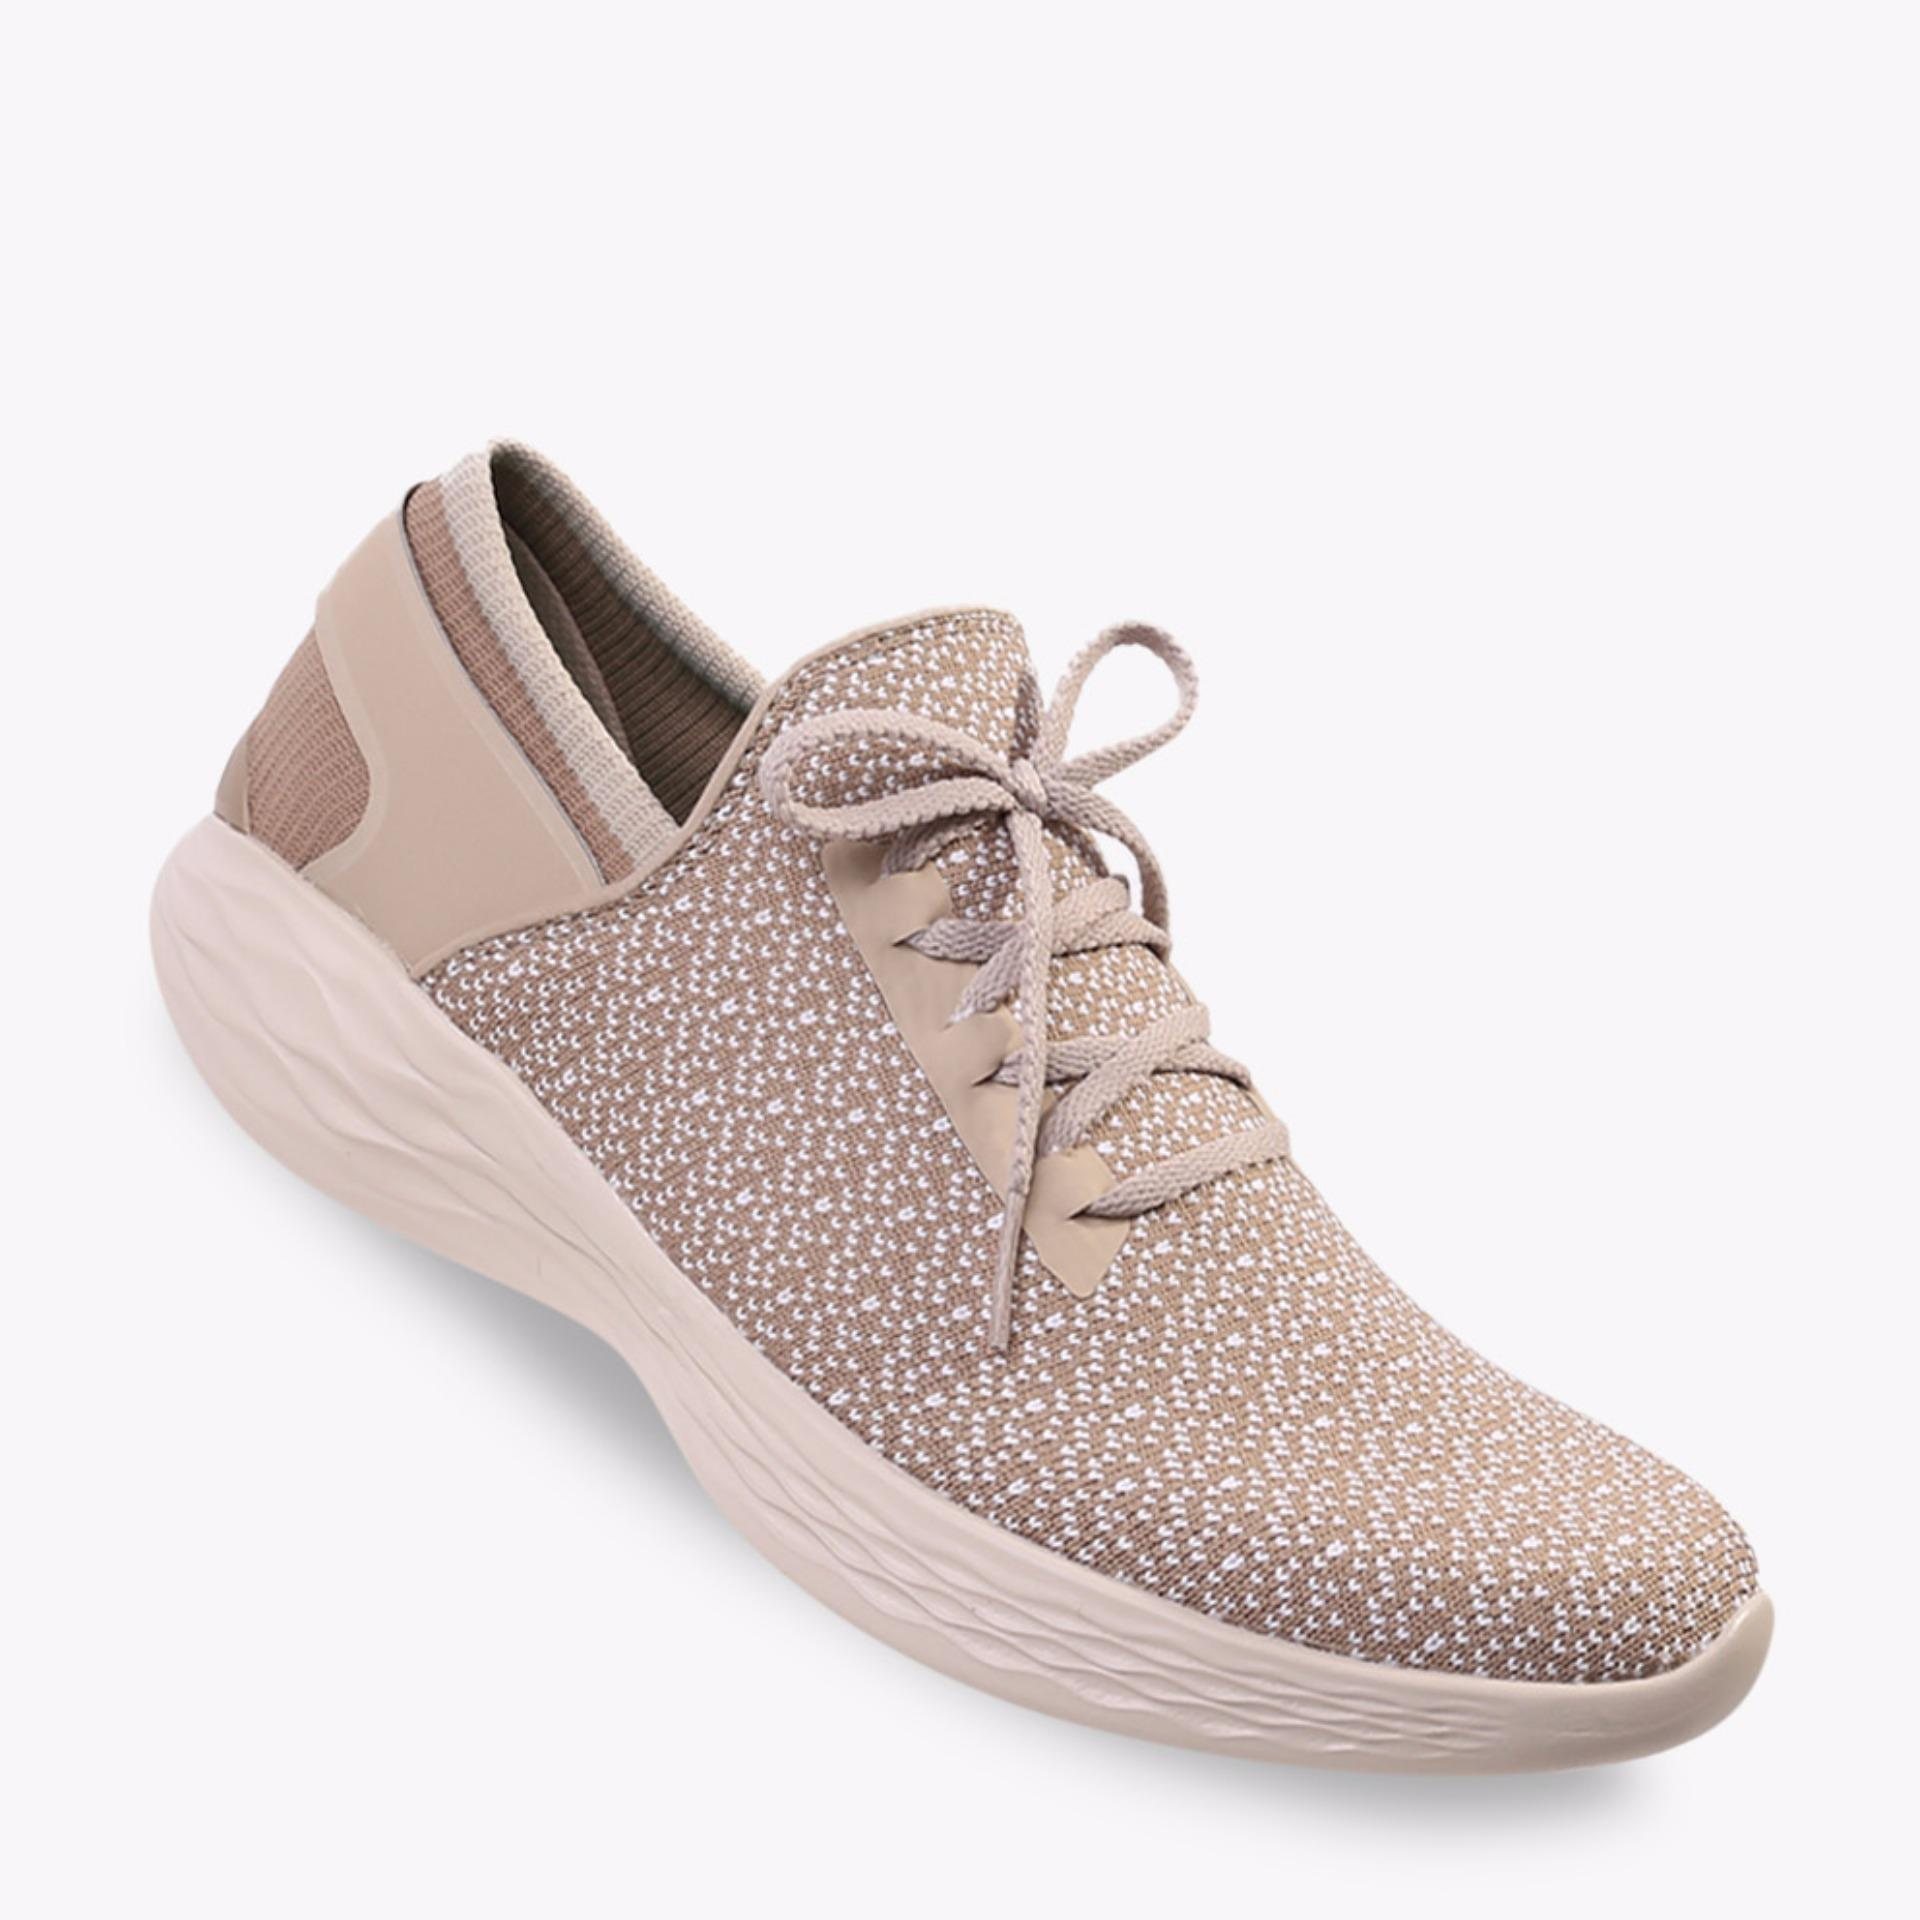 Promo Toko Skechers You Inspire Women S Sneakers Shoes Khaki